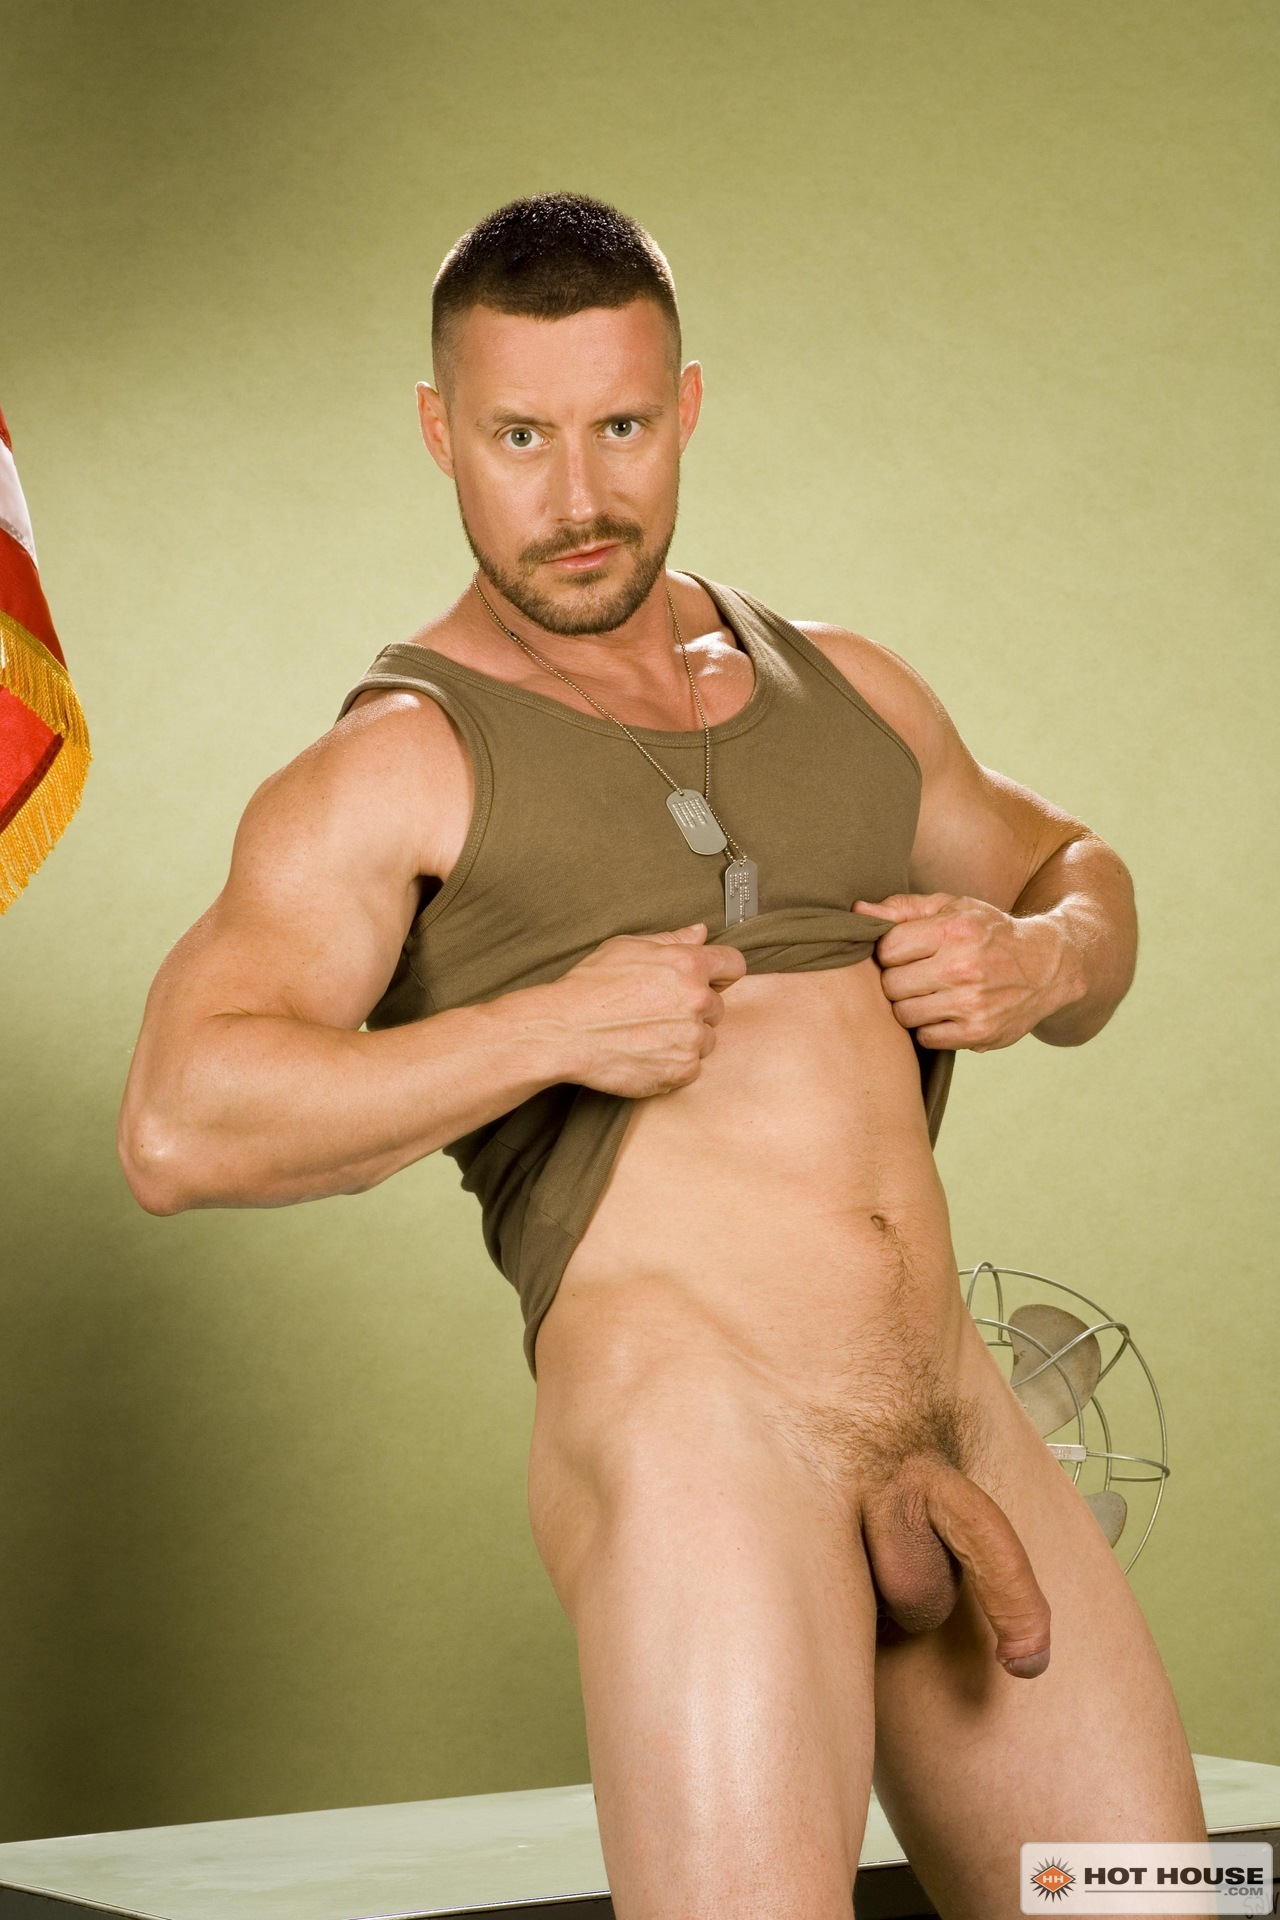 from Mateo free uniform gay pic